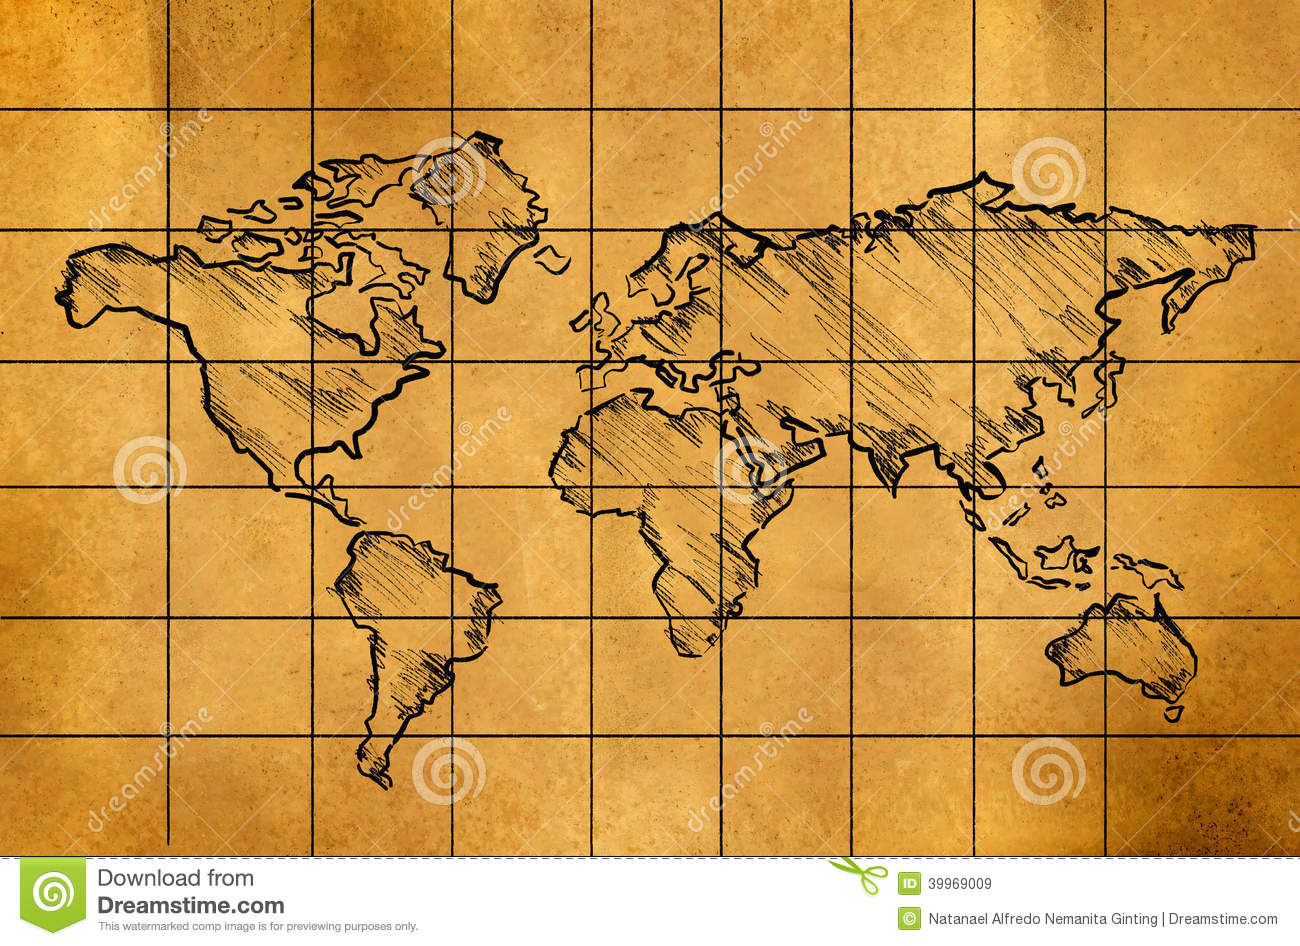 World map sketch on old paper stock illustration illustration of royalty free stock photo gumiabroncs Image collections